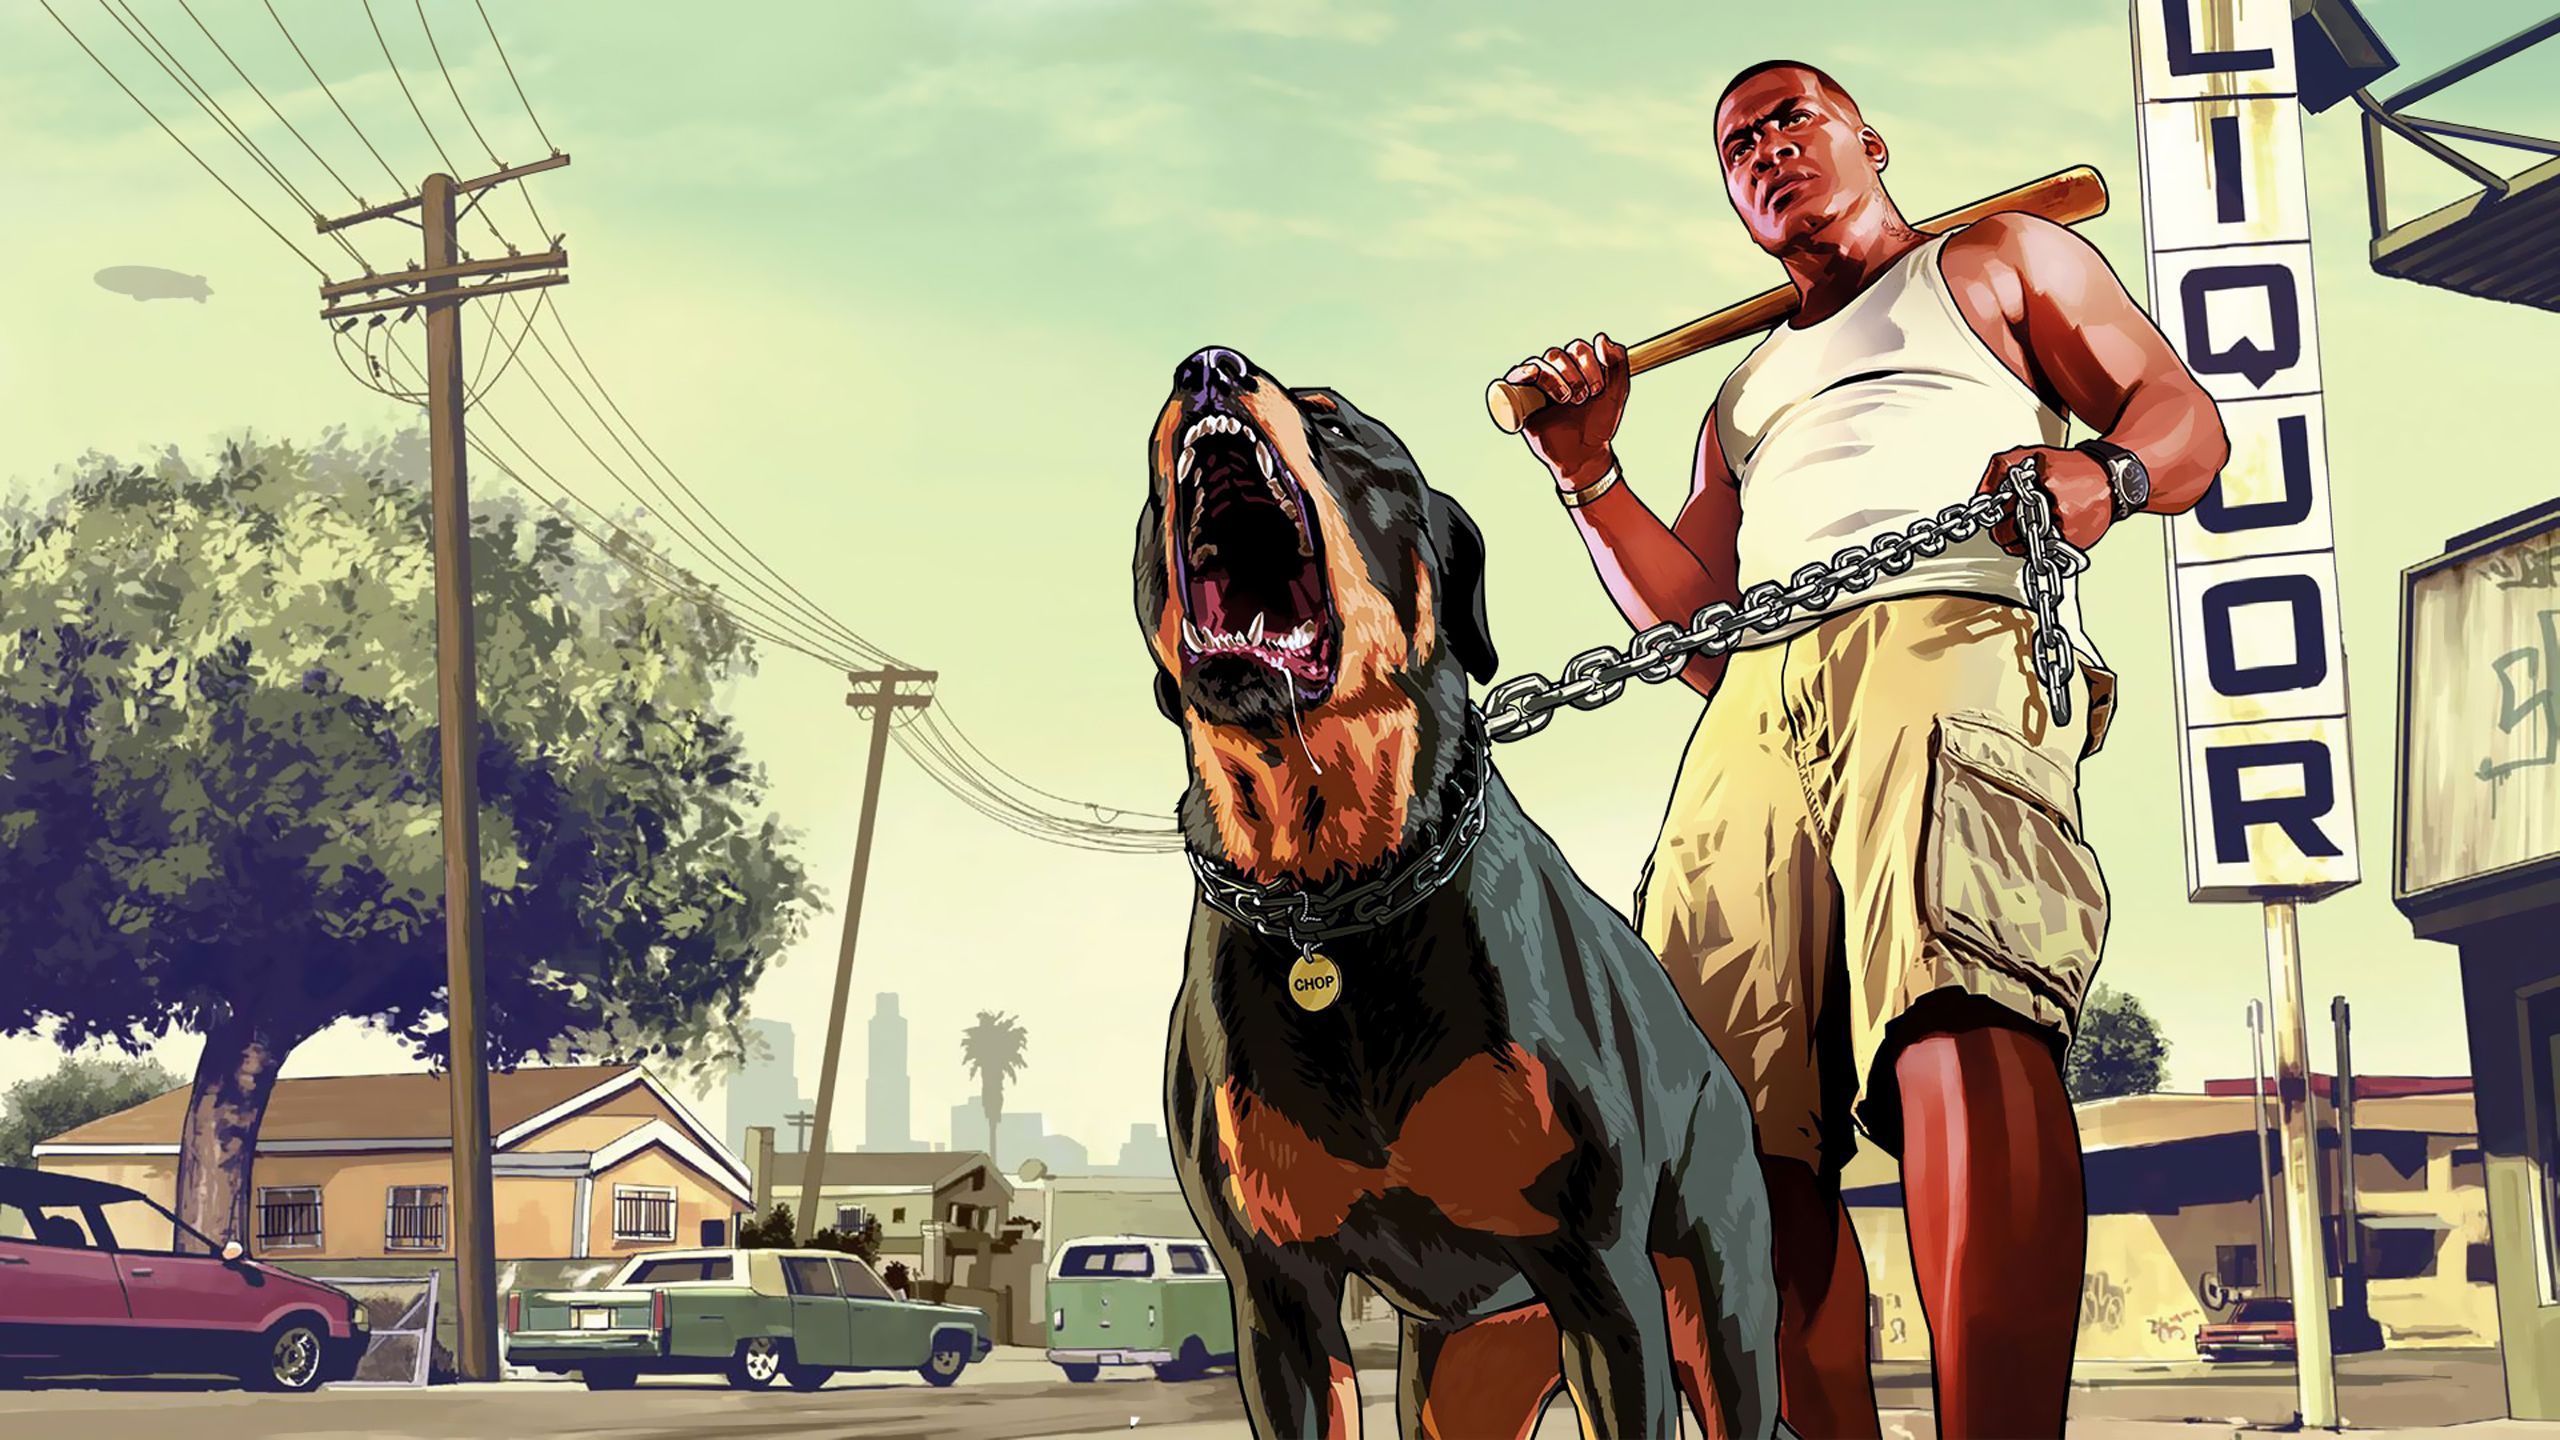 Gta  Wallpaper Full Hd Wallcapture Com